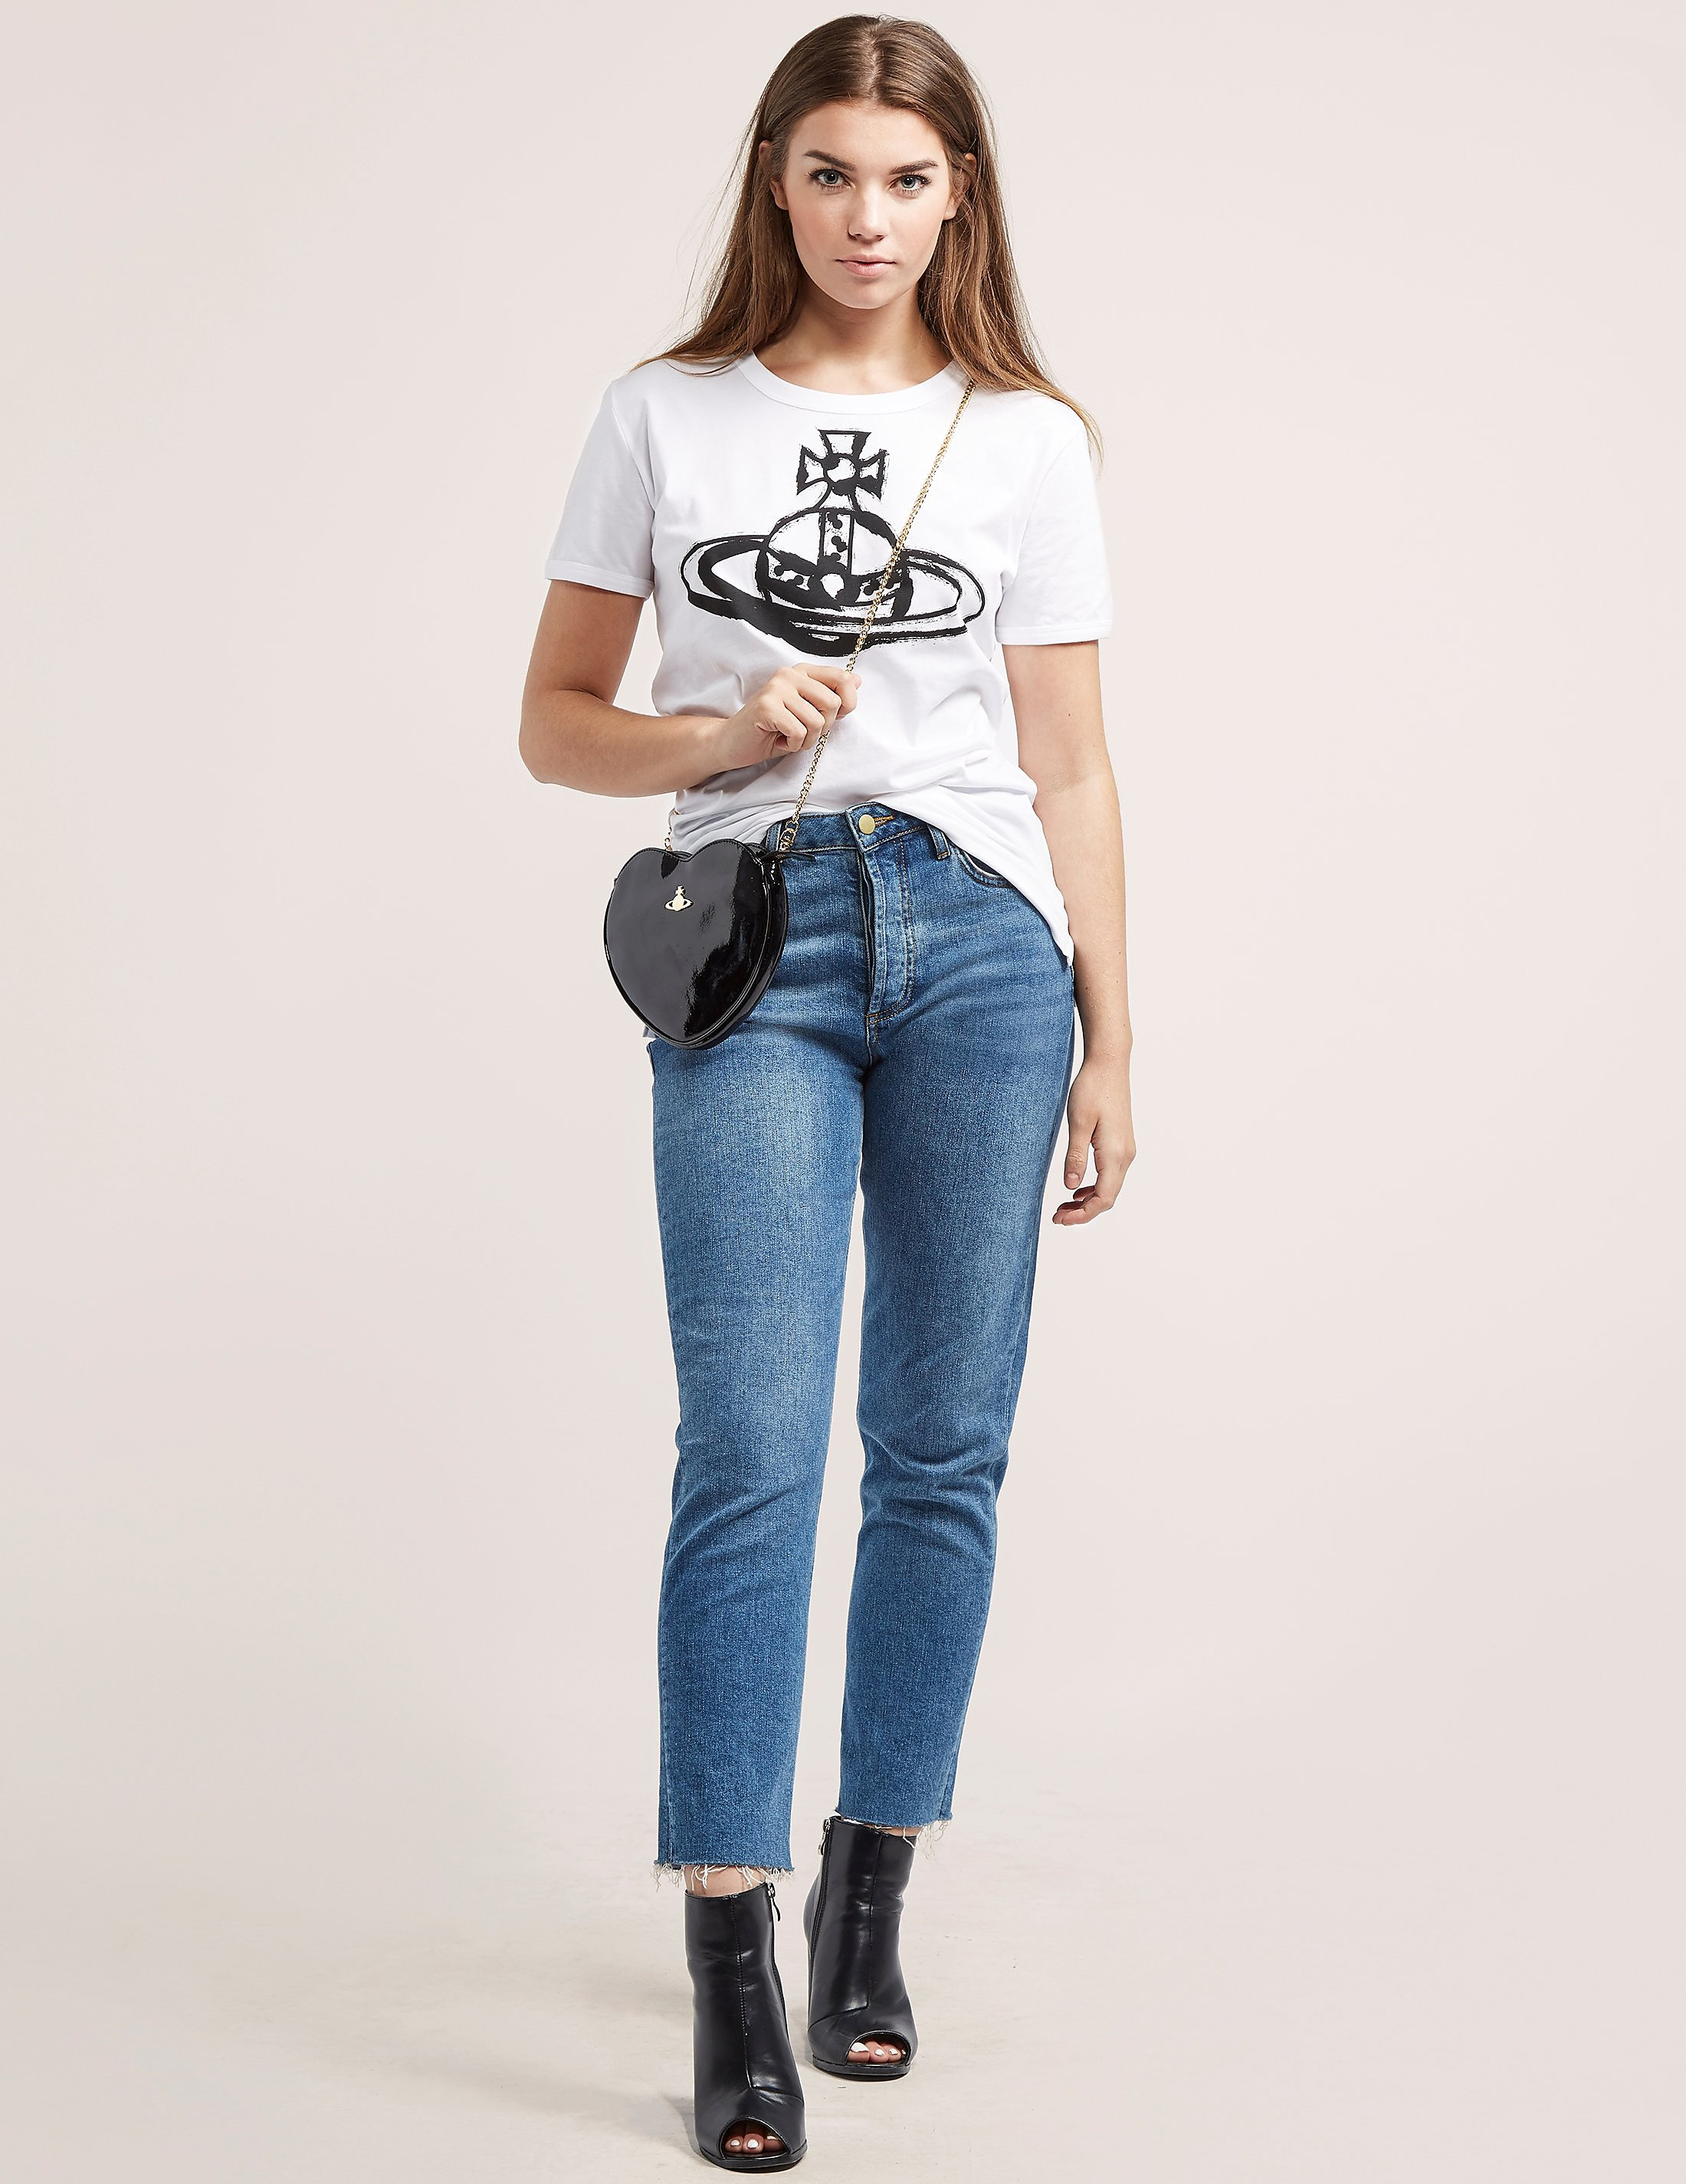 Vivienne Westwood Anglomania Brushstroke Orb T-Shirt